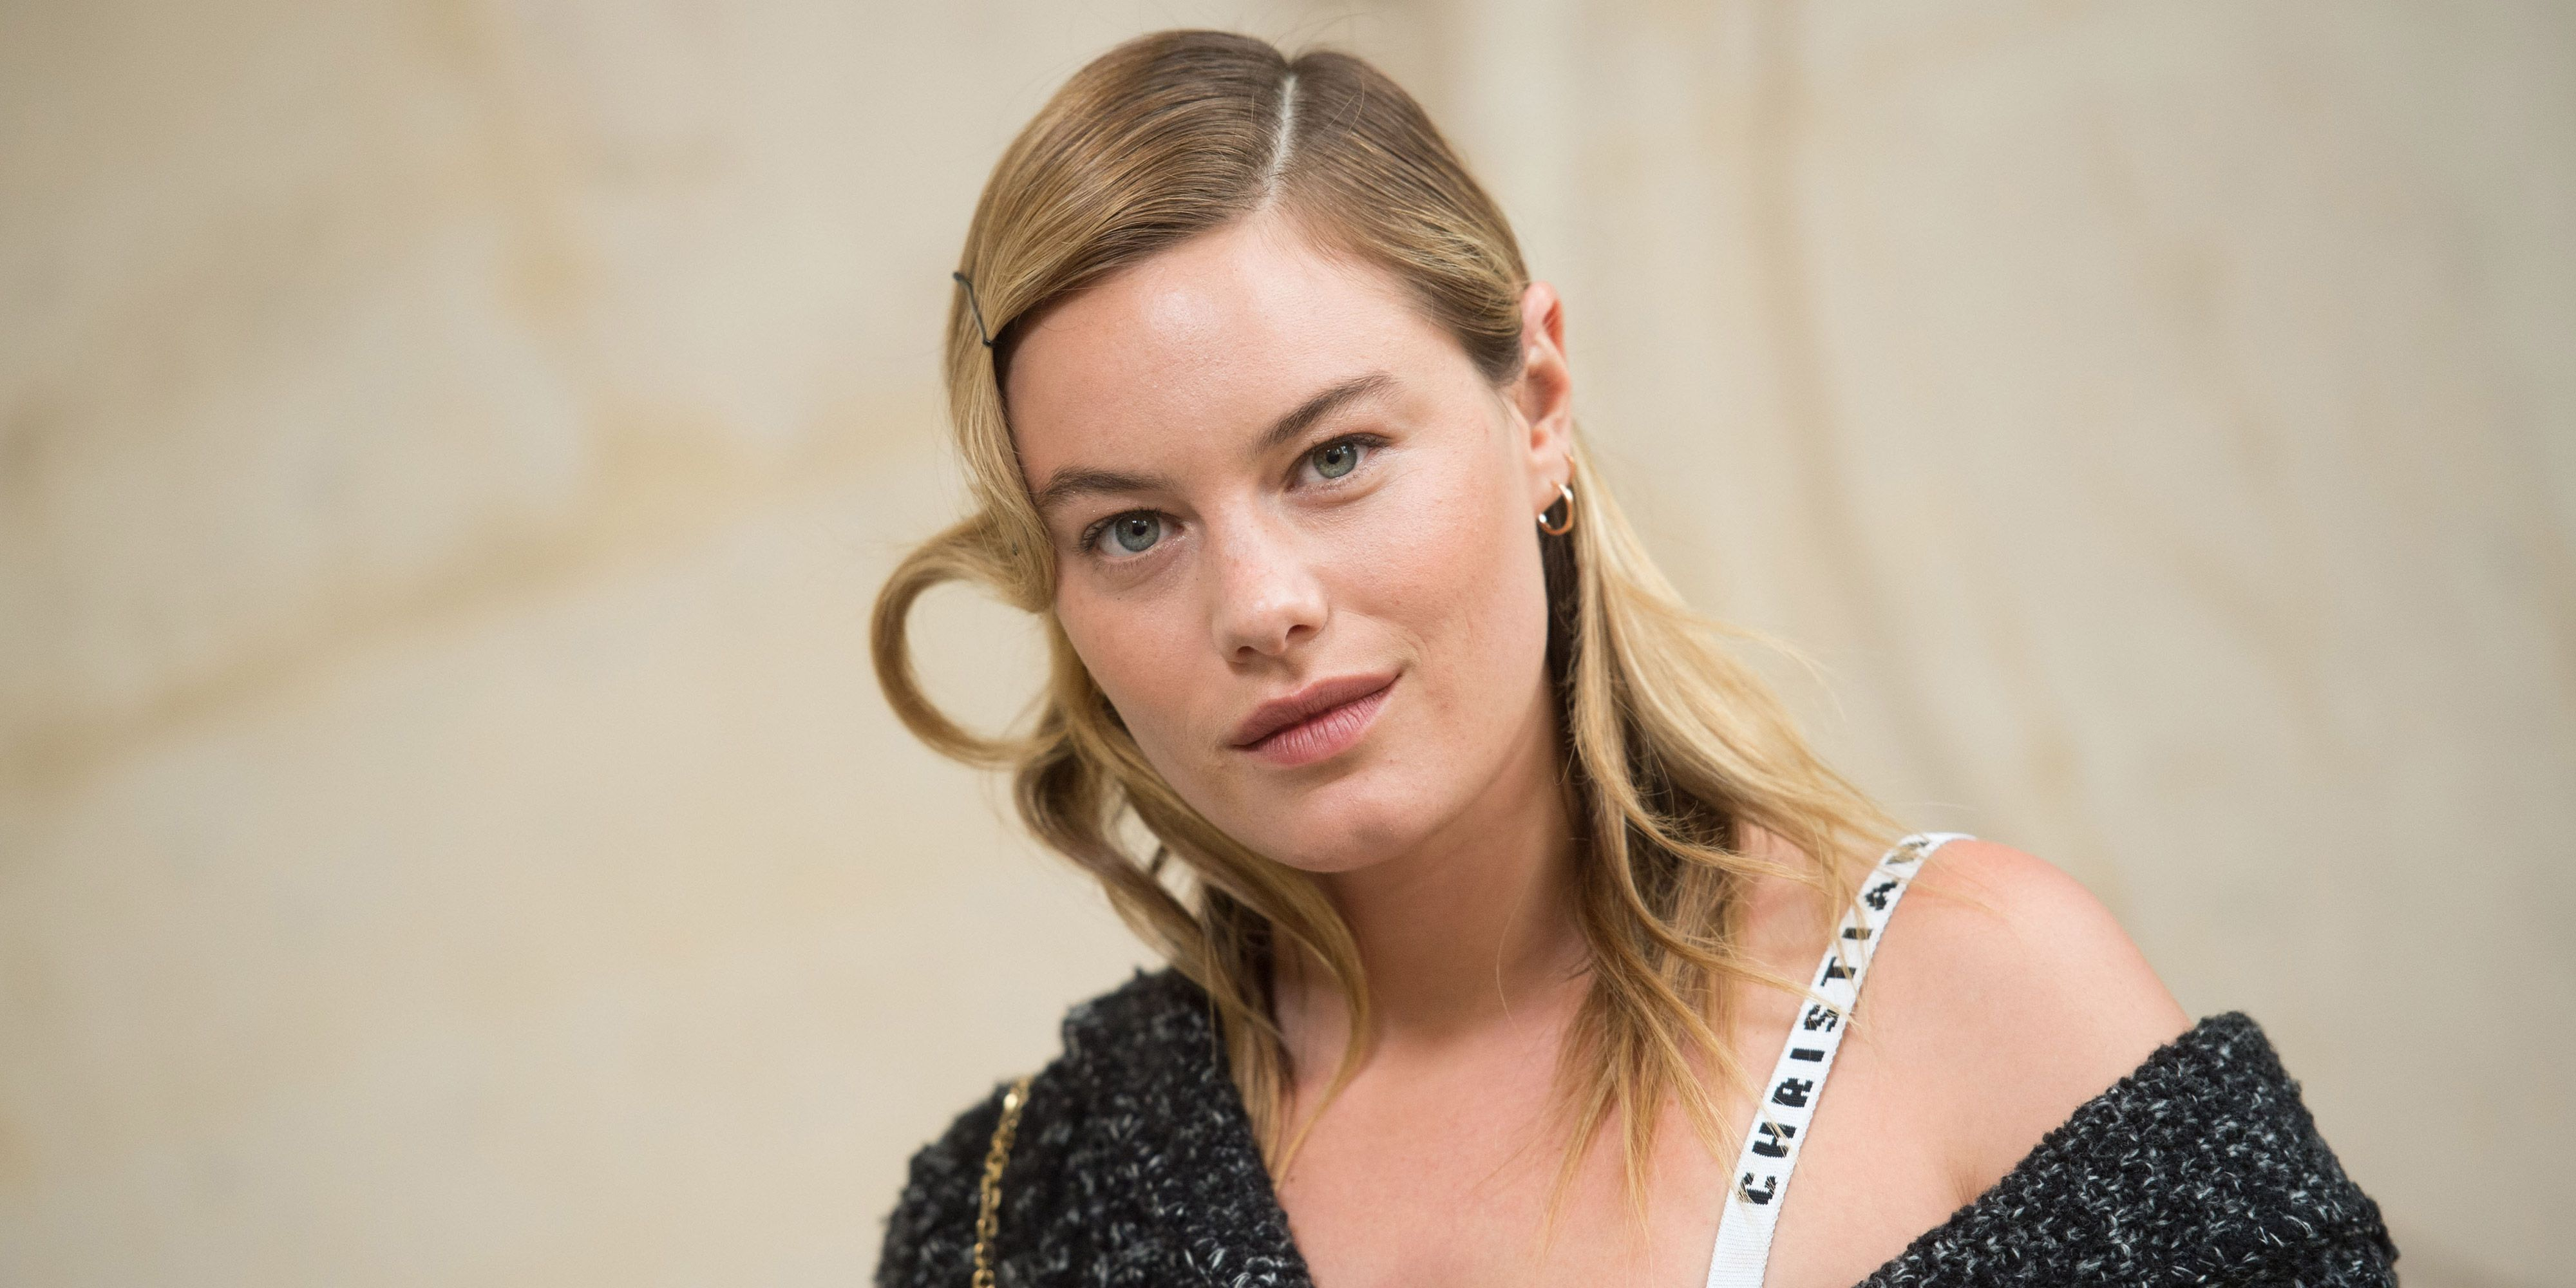 Photos Camille Rowe naked (45 photo), Sexy